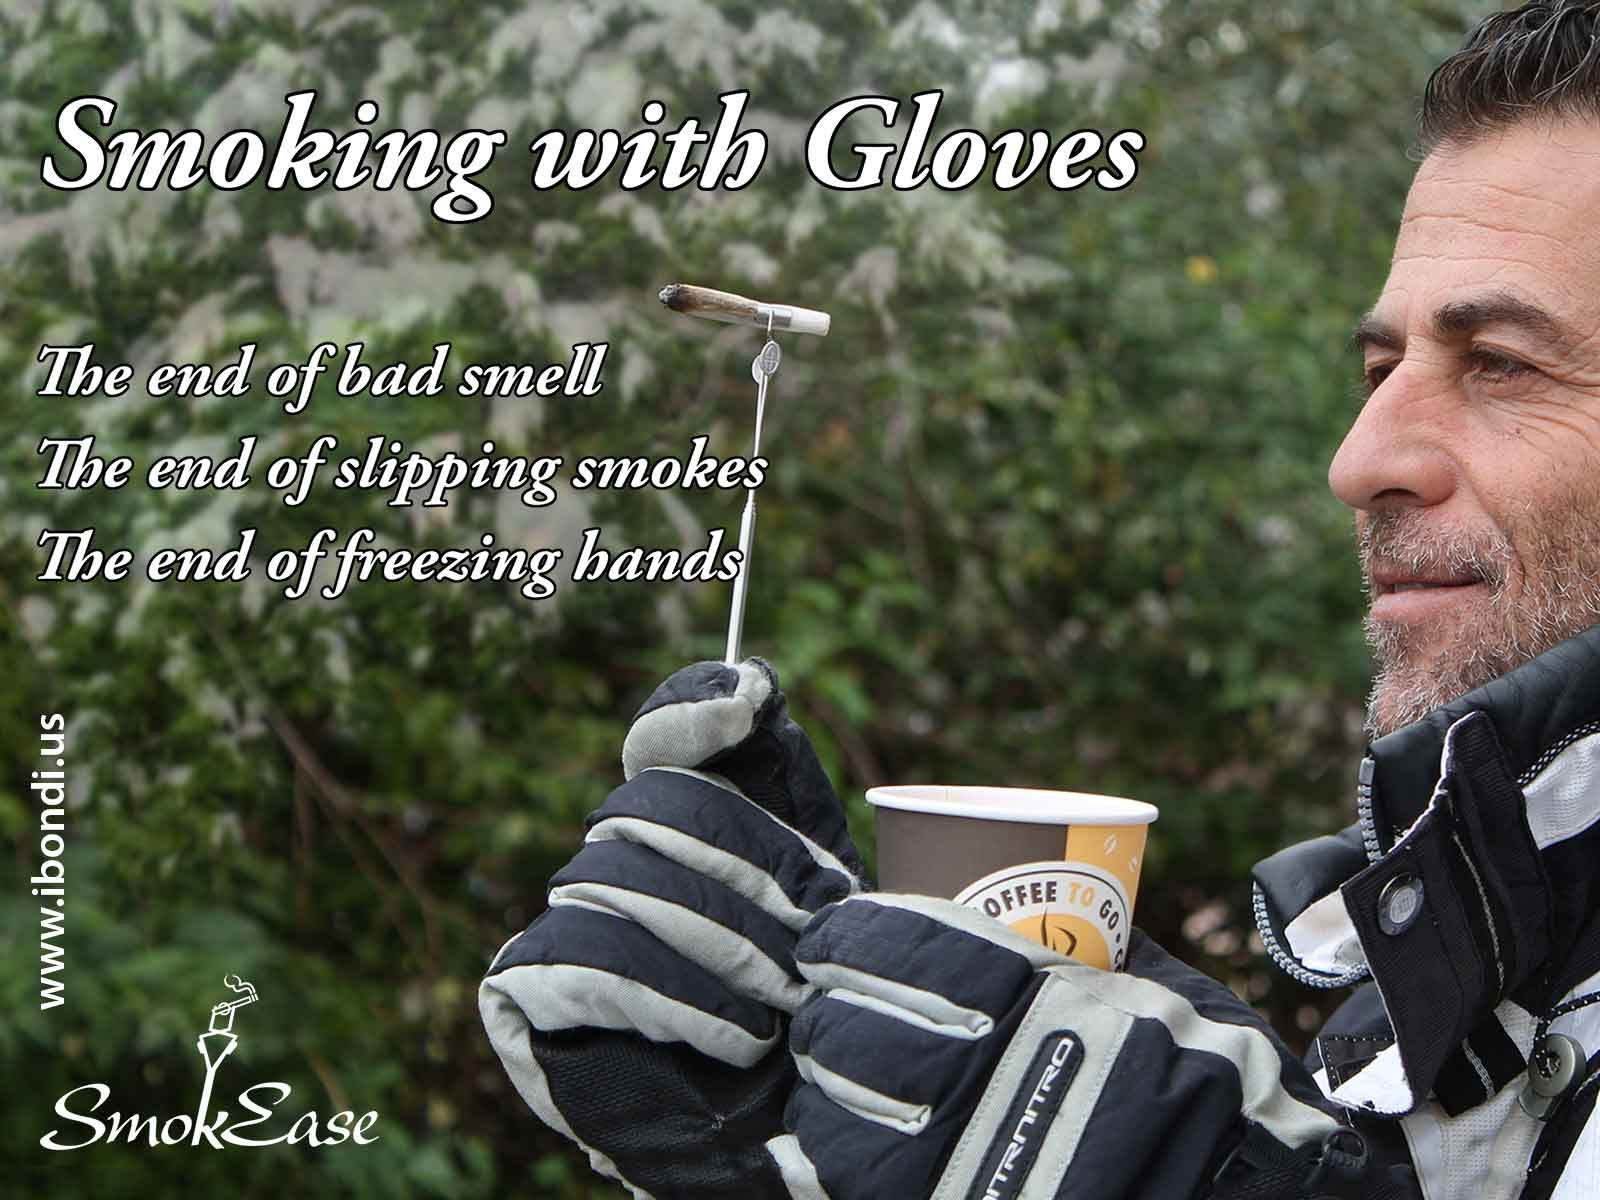 Smoking with gloves